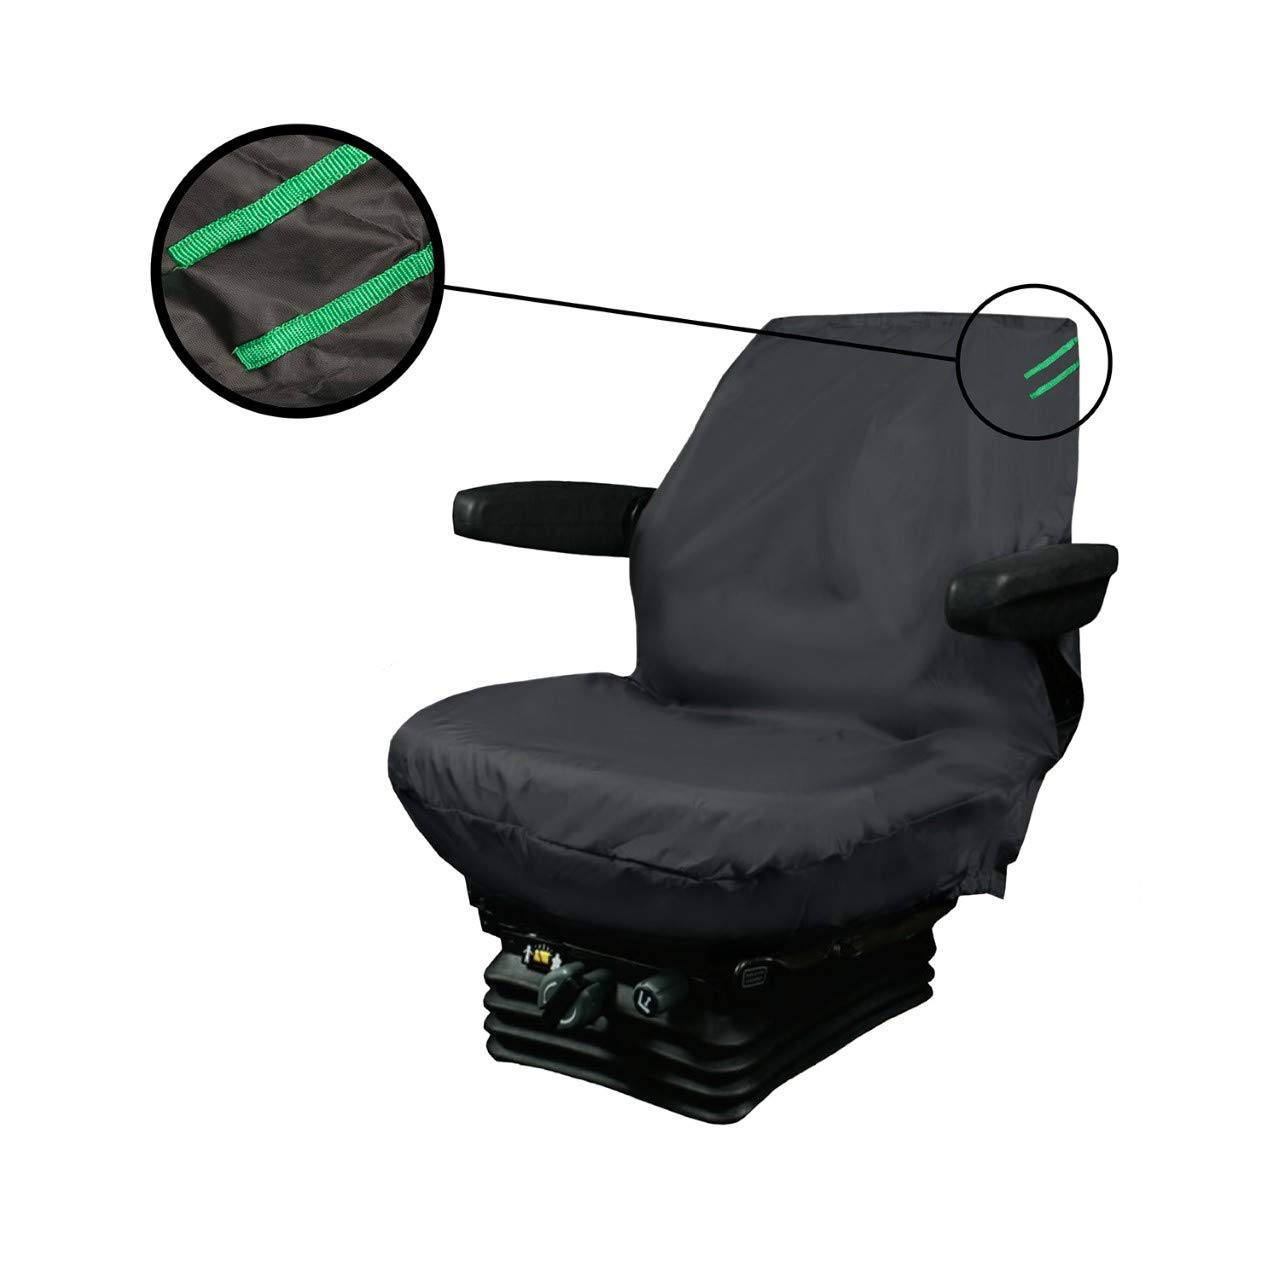 XtremeAuto Universal Waterproof Digger Seat Cover - Black With Green Detailing (Large)